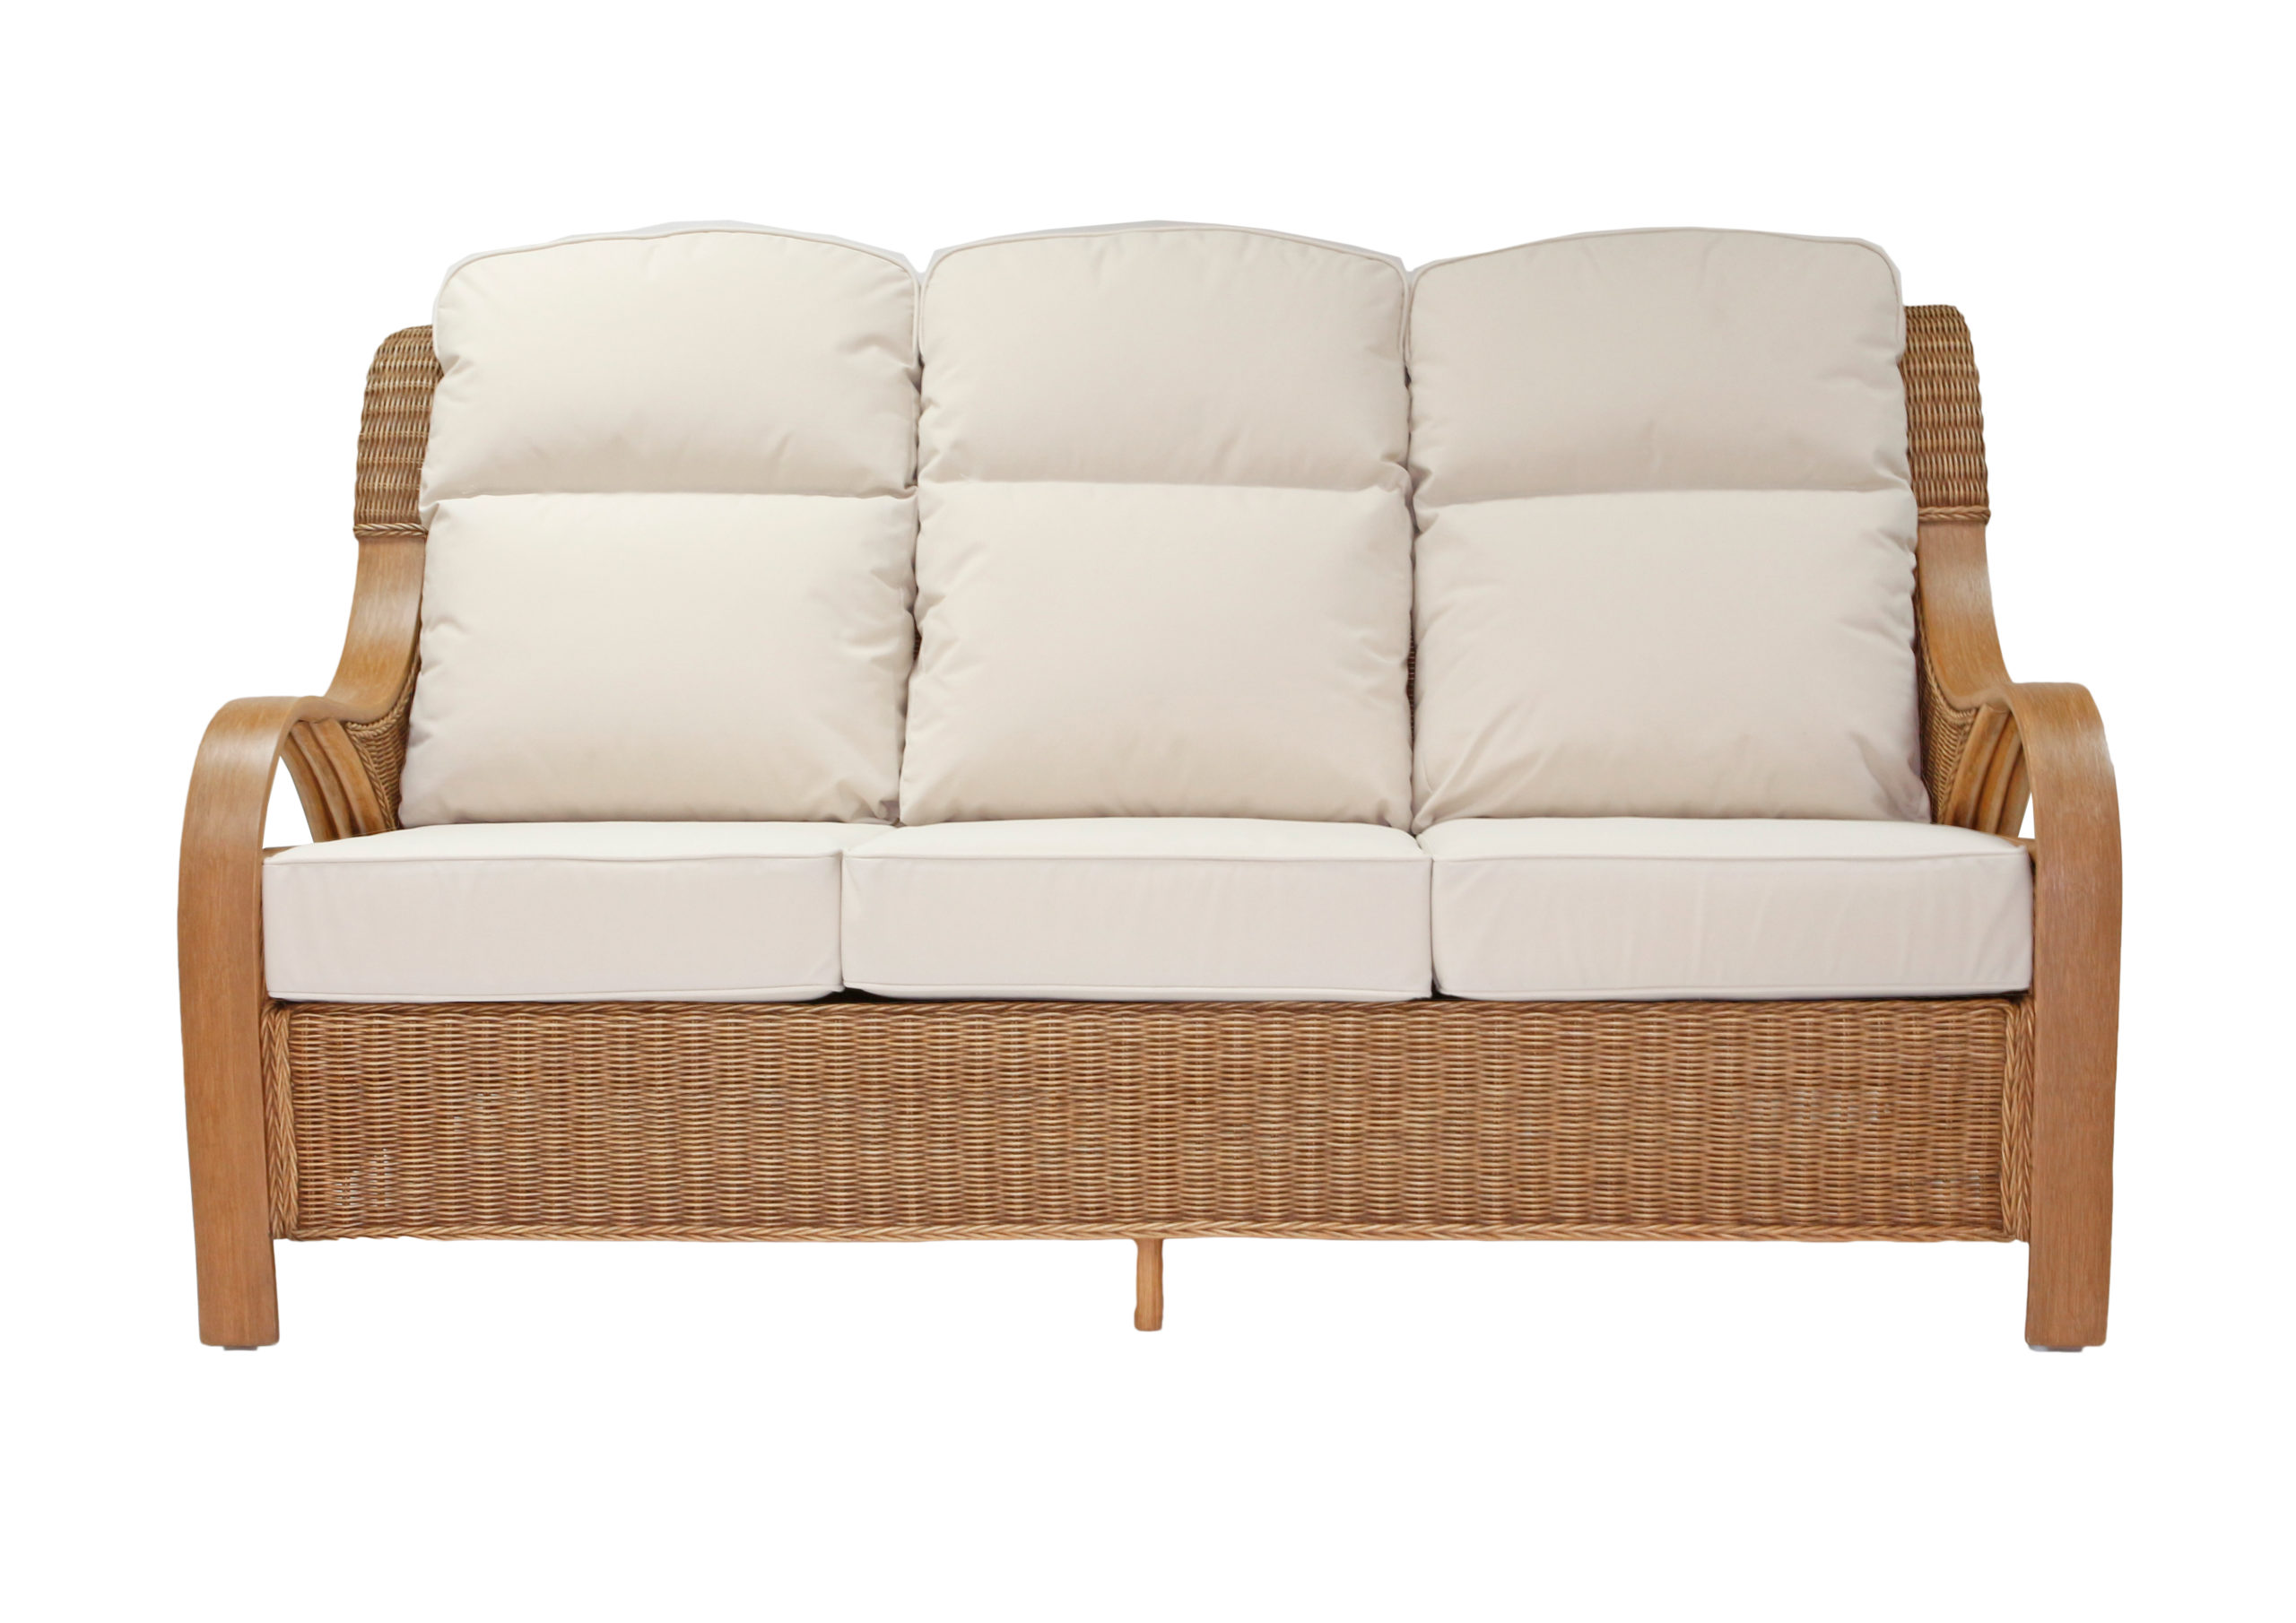 Waterford Lounging 3 Seater Sofa